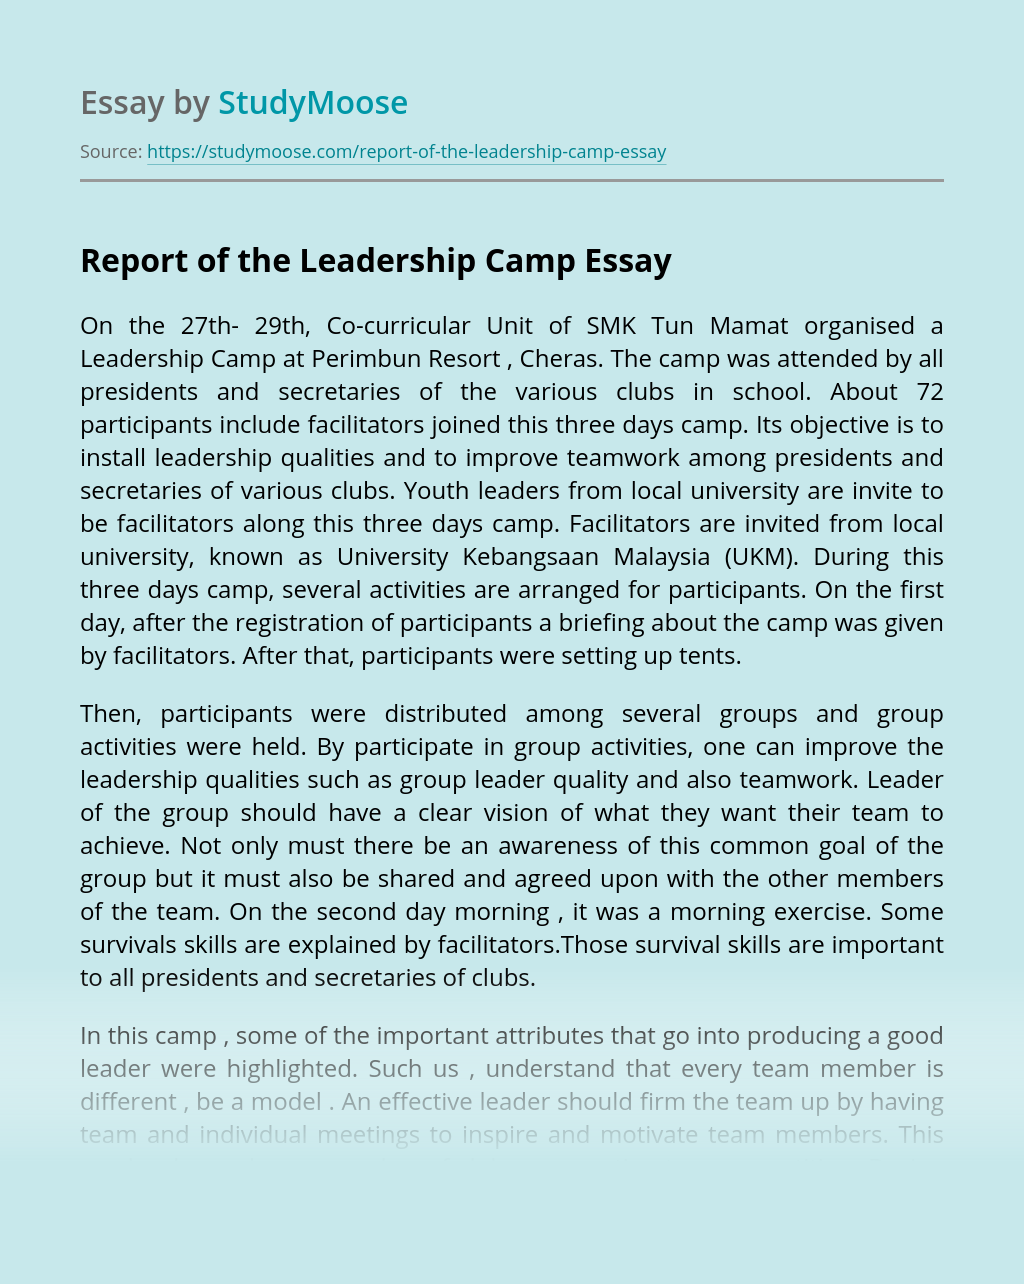 Report of the Leadership Camp